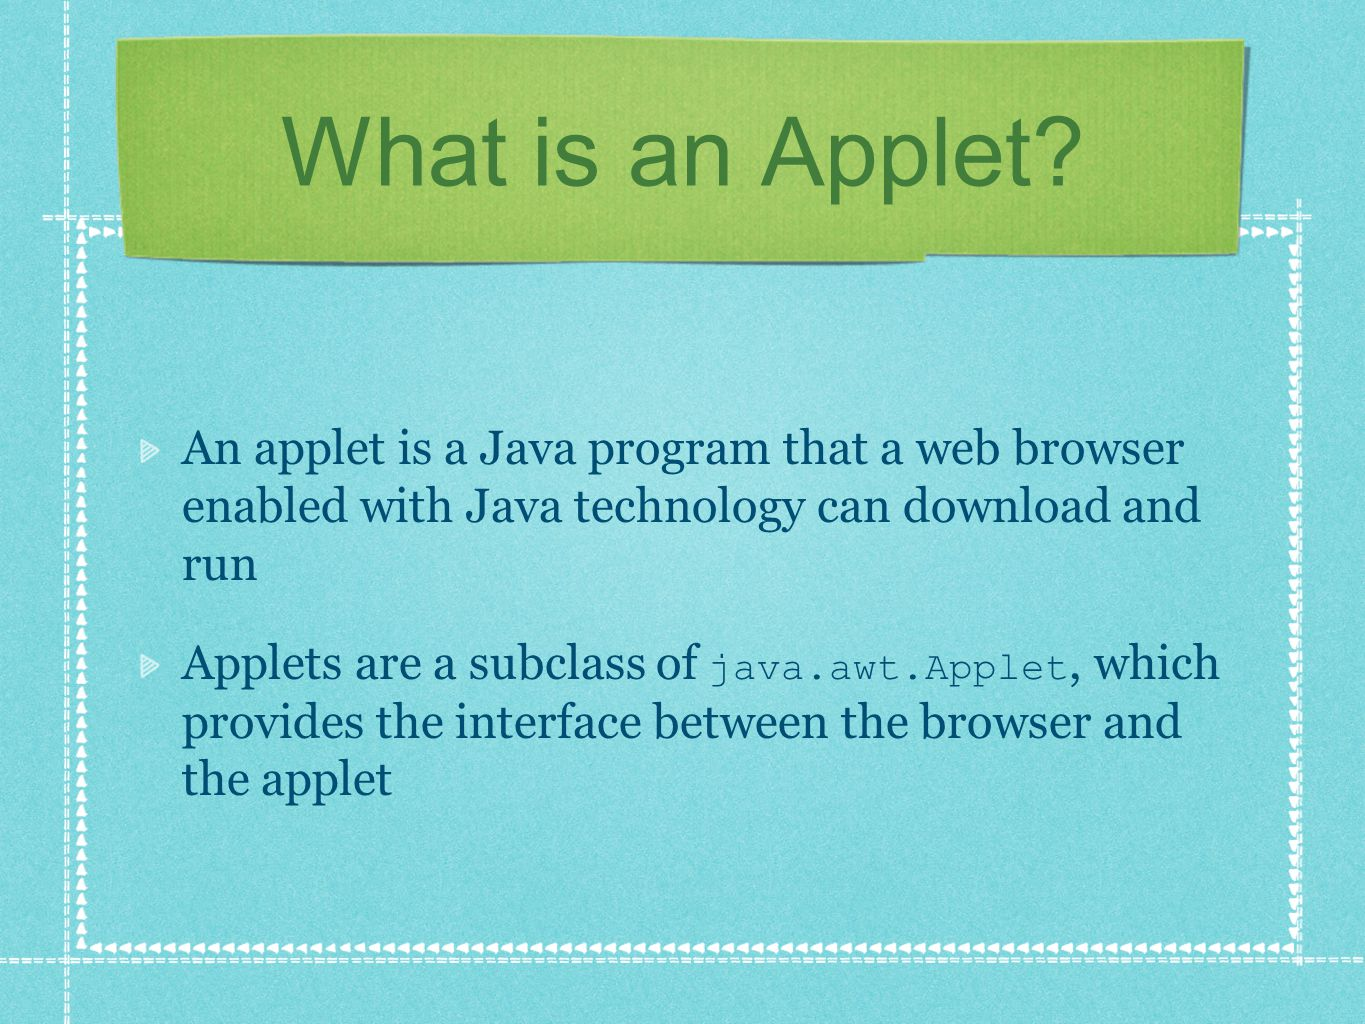 What is an Applet? An applet is a Java program that a web browser enabled with Java technology can download and run Applets are a subclass of java.awt